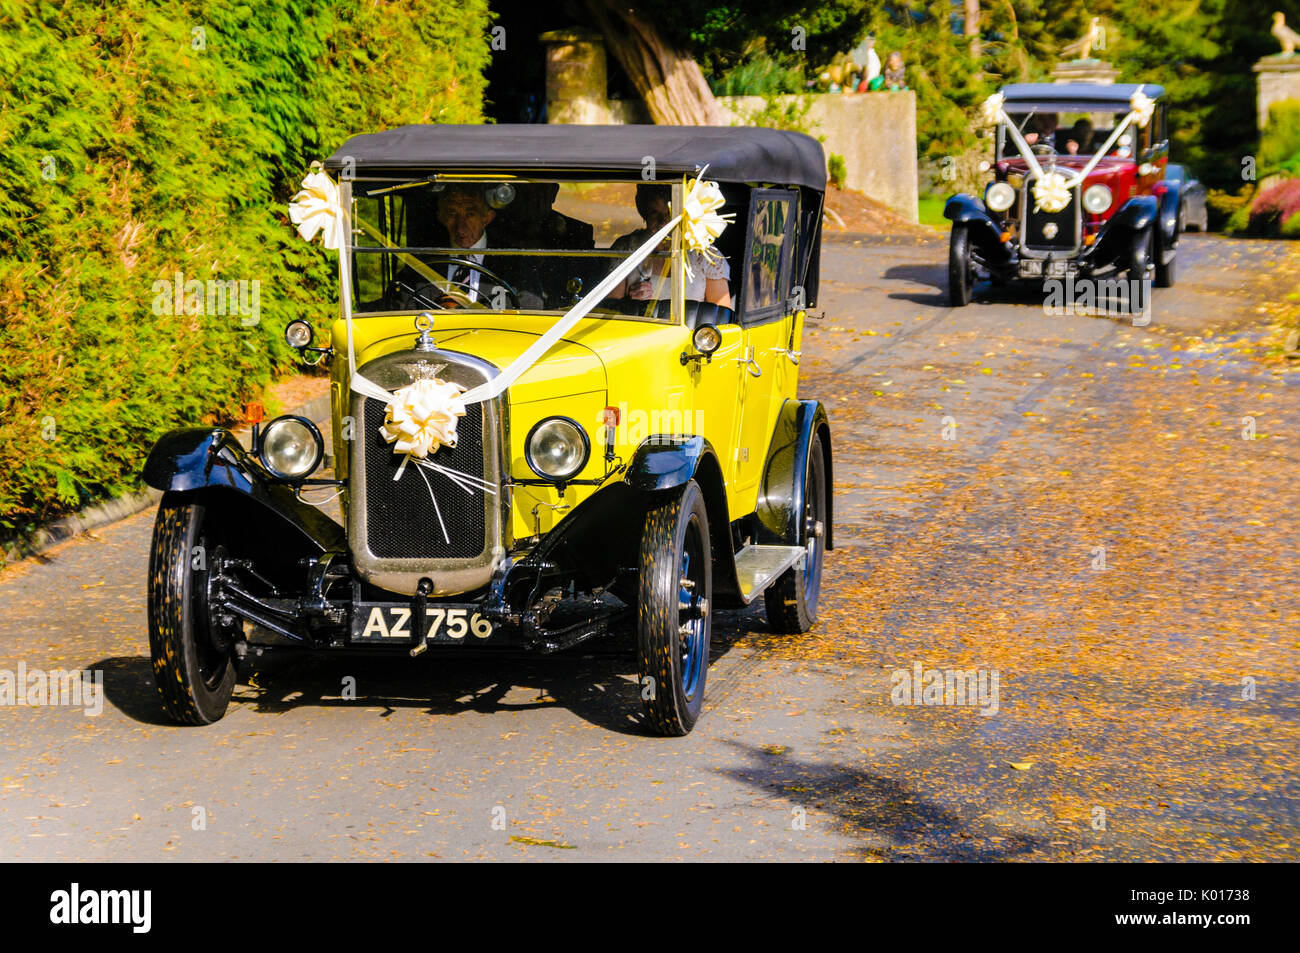 Wedding Cars Stock Photos & Wedding Cars Stock Images - Alamy